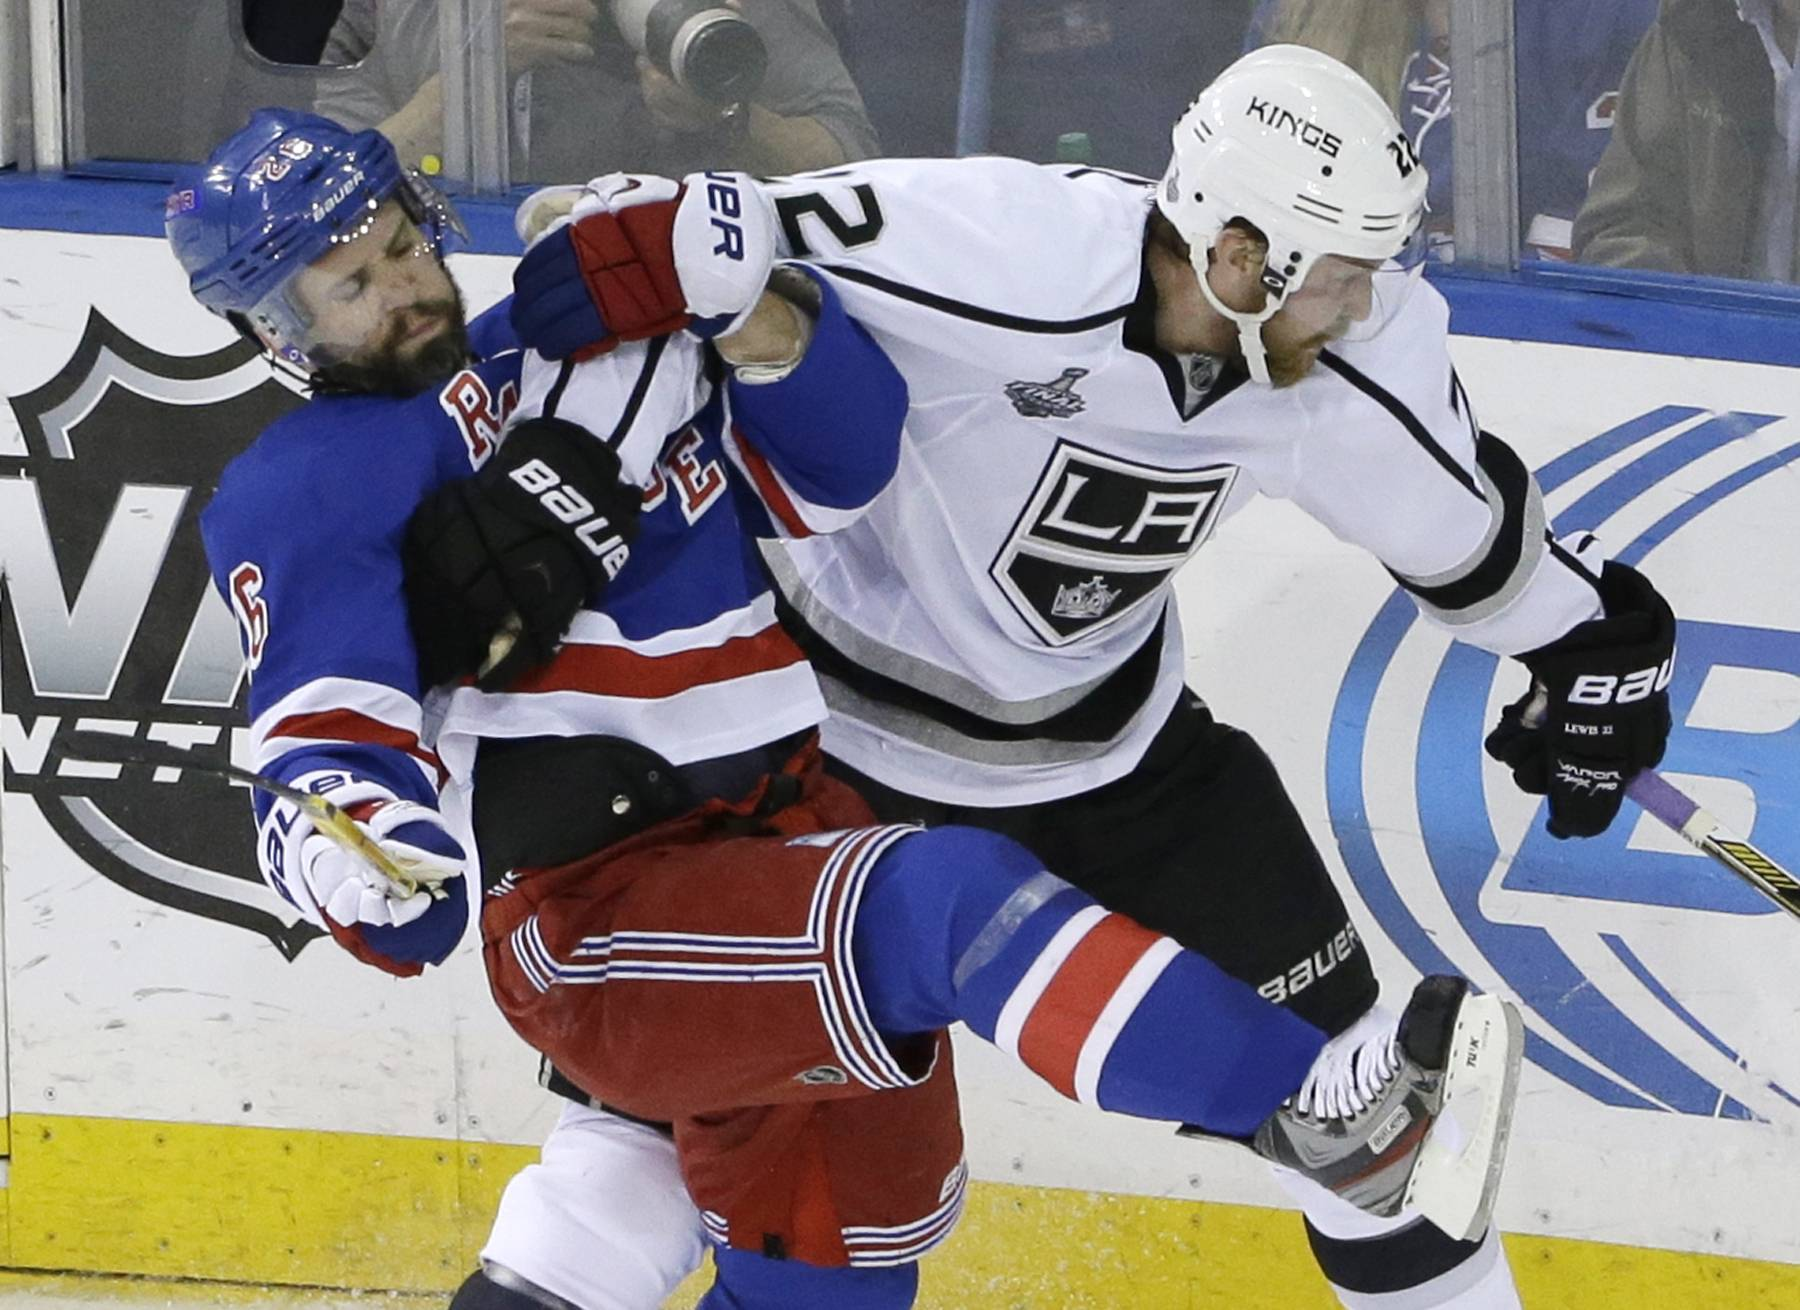 New York Rangers right wing Martin St. Louis (26), left, collides with Los Angeles Kings center Trevor Lewis (22) in the second period Monday during Game 3 of the NHL hockey Stanley Cup Final in New York.